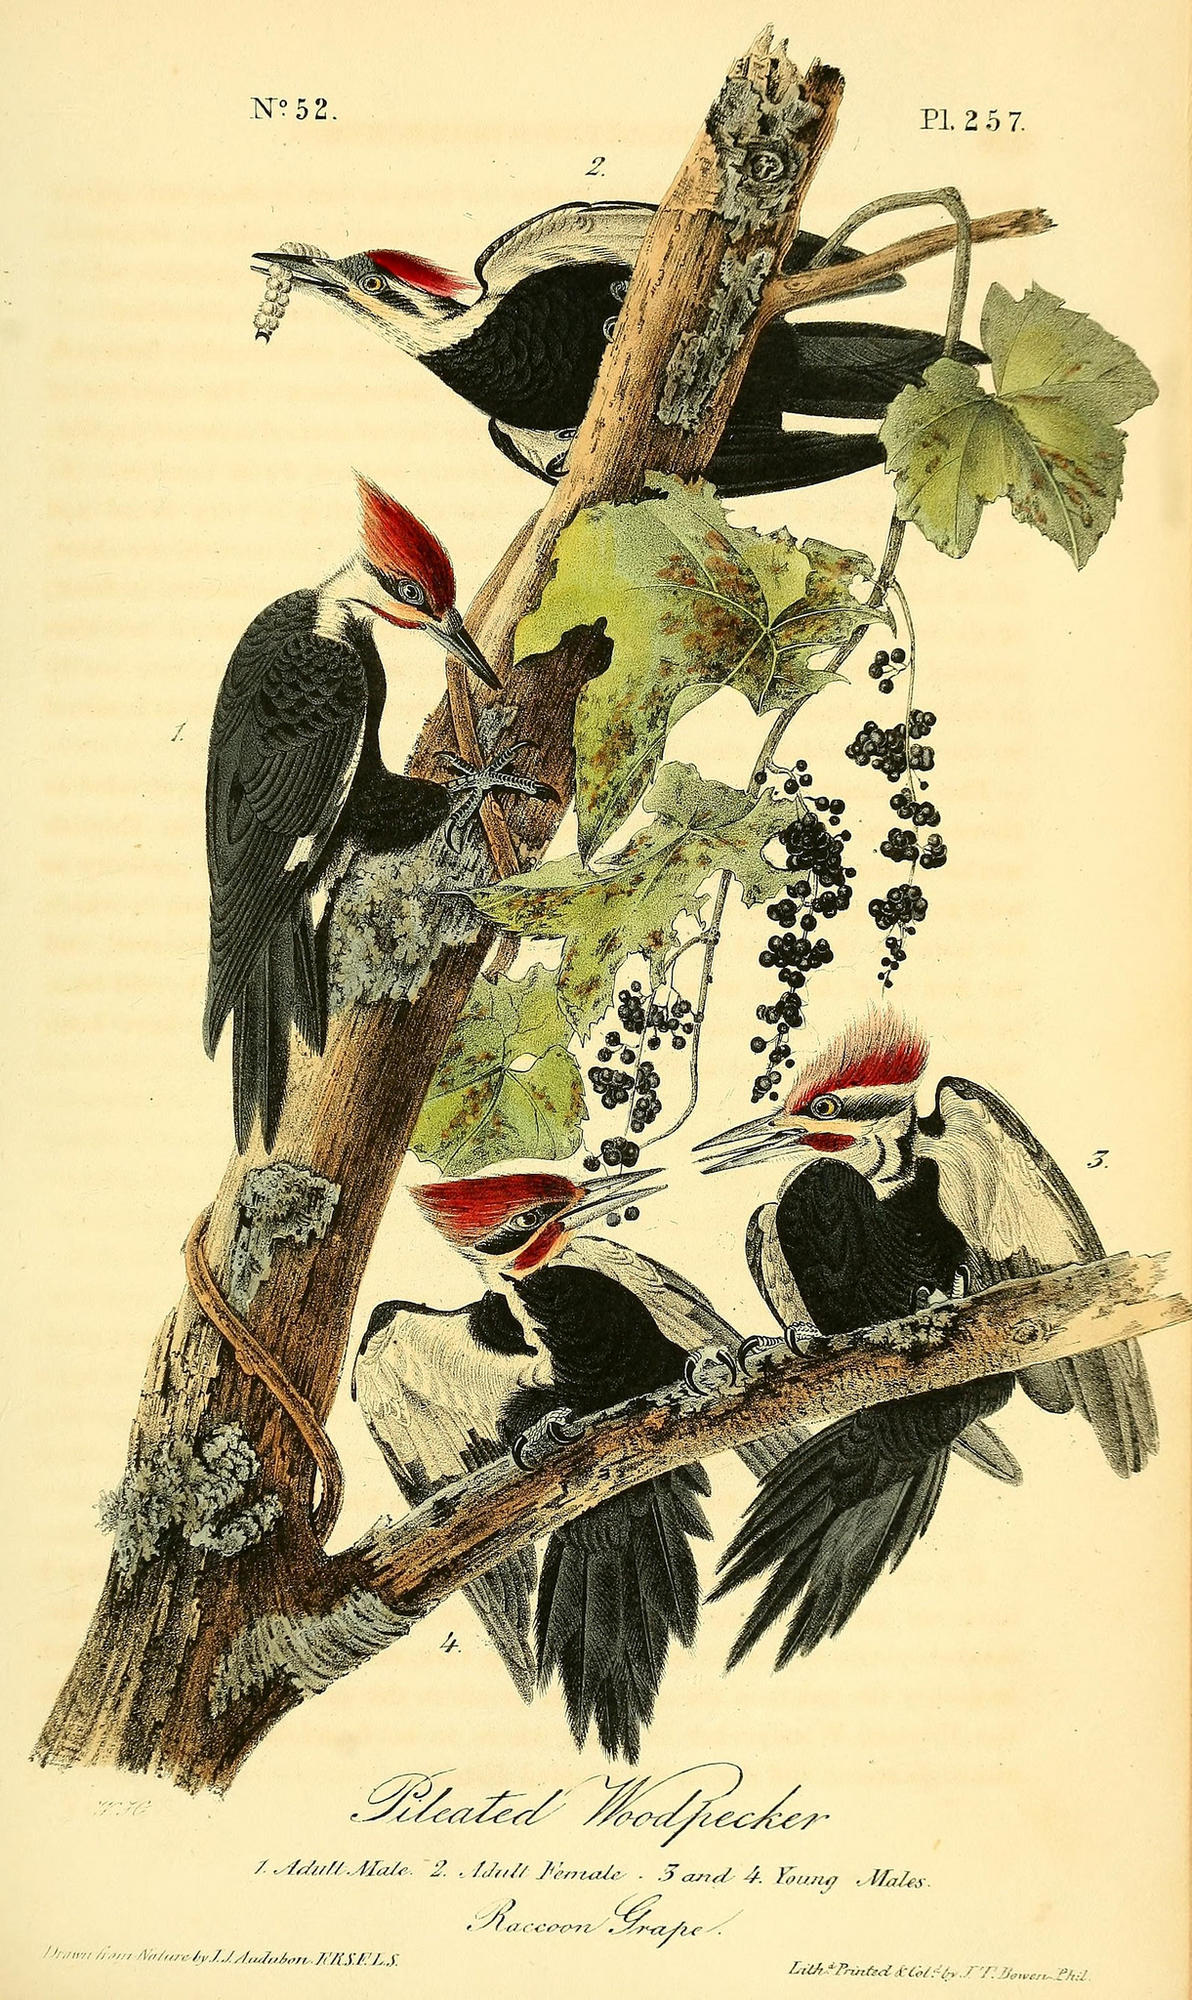 Illustration of Pileated Woodpeckers by John James Audubon.